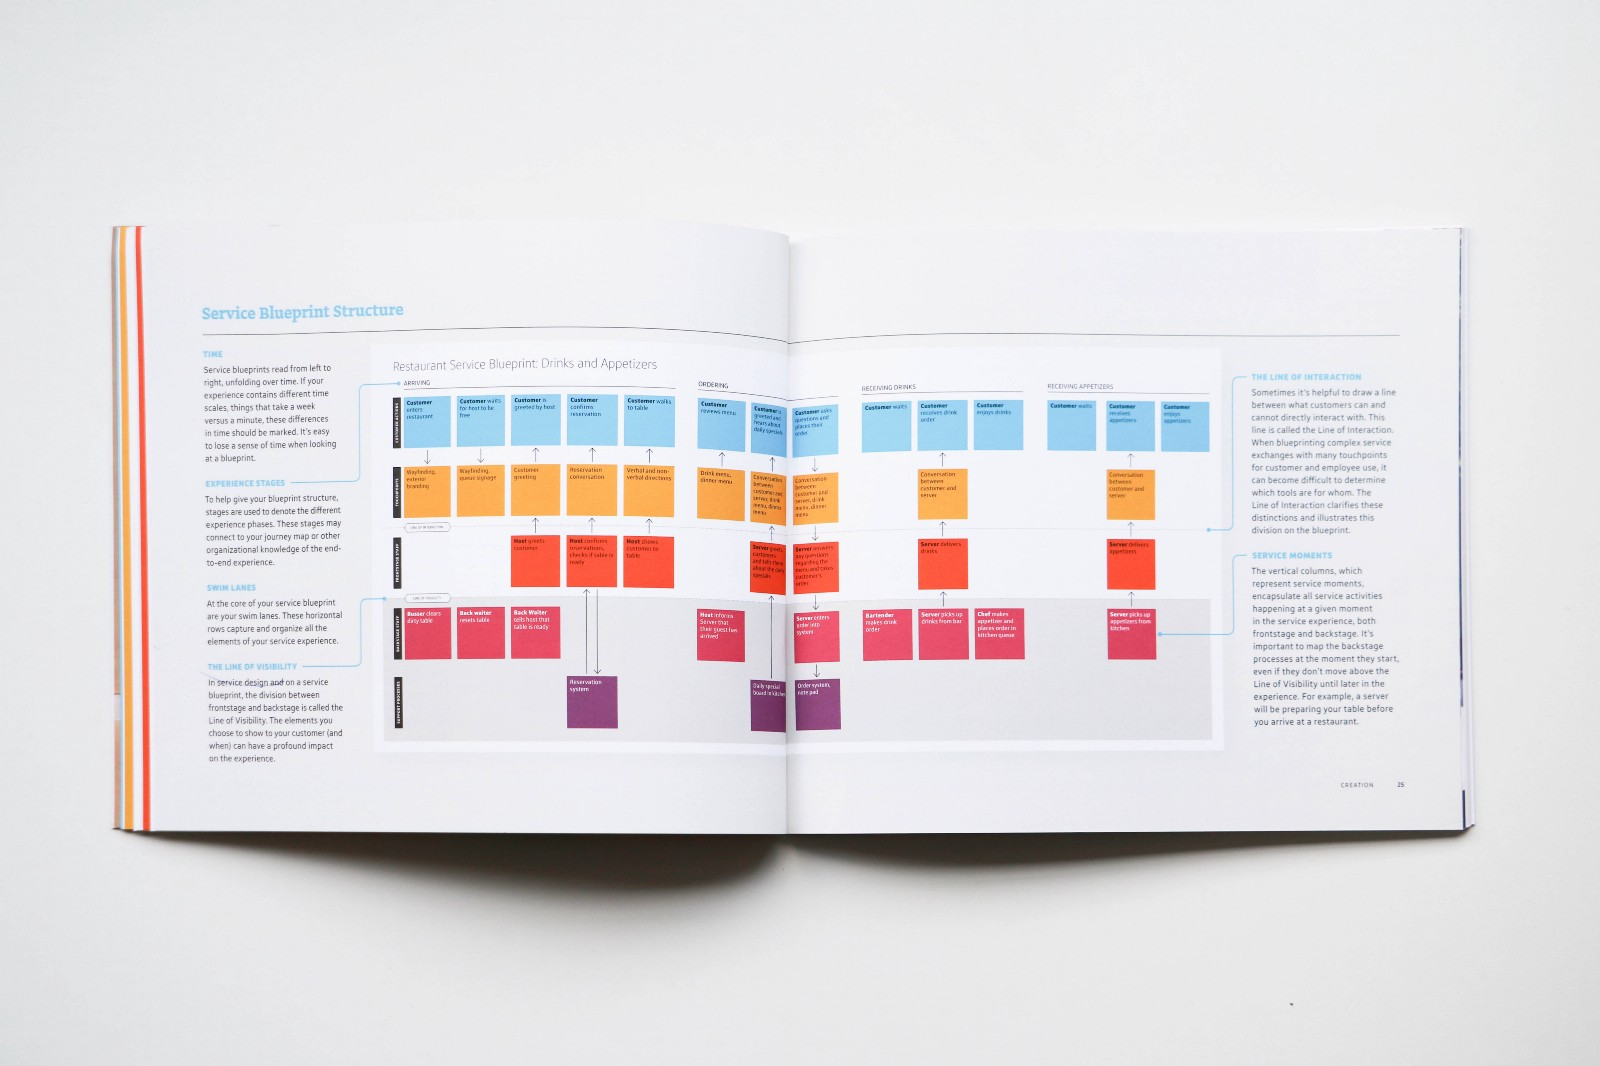 Download our guide to service blueprinting one design community download our guide to service blueprinting here malvernweather Image collections